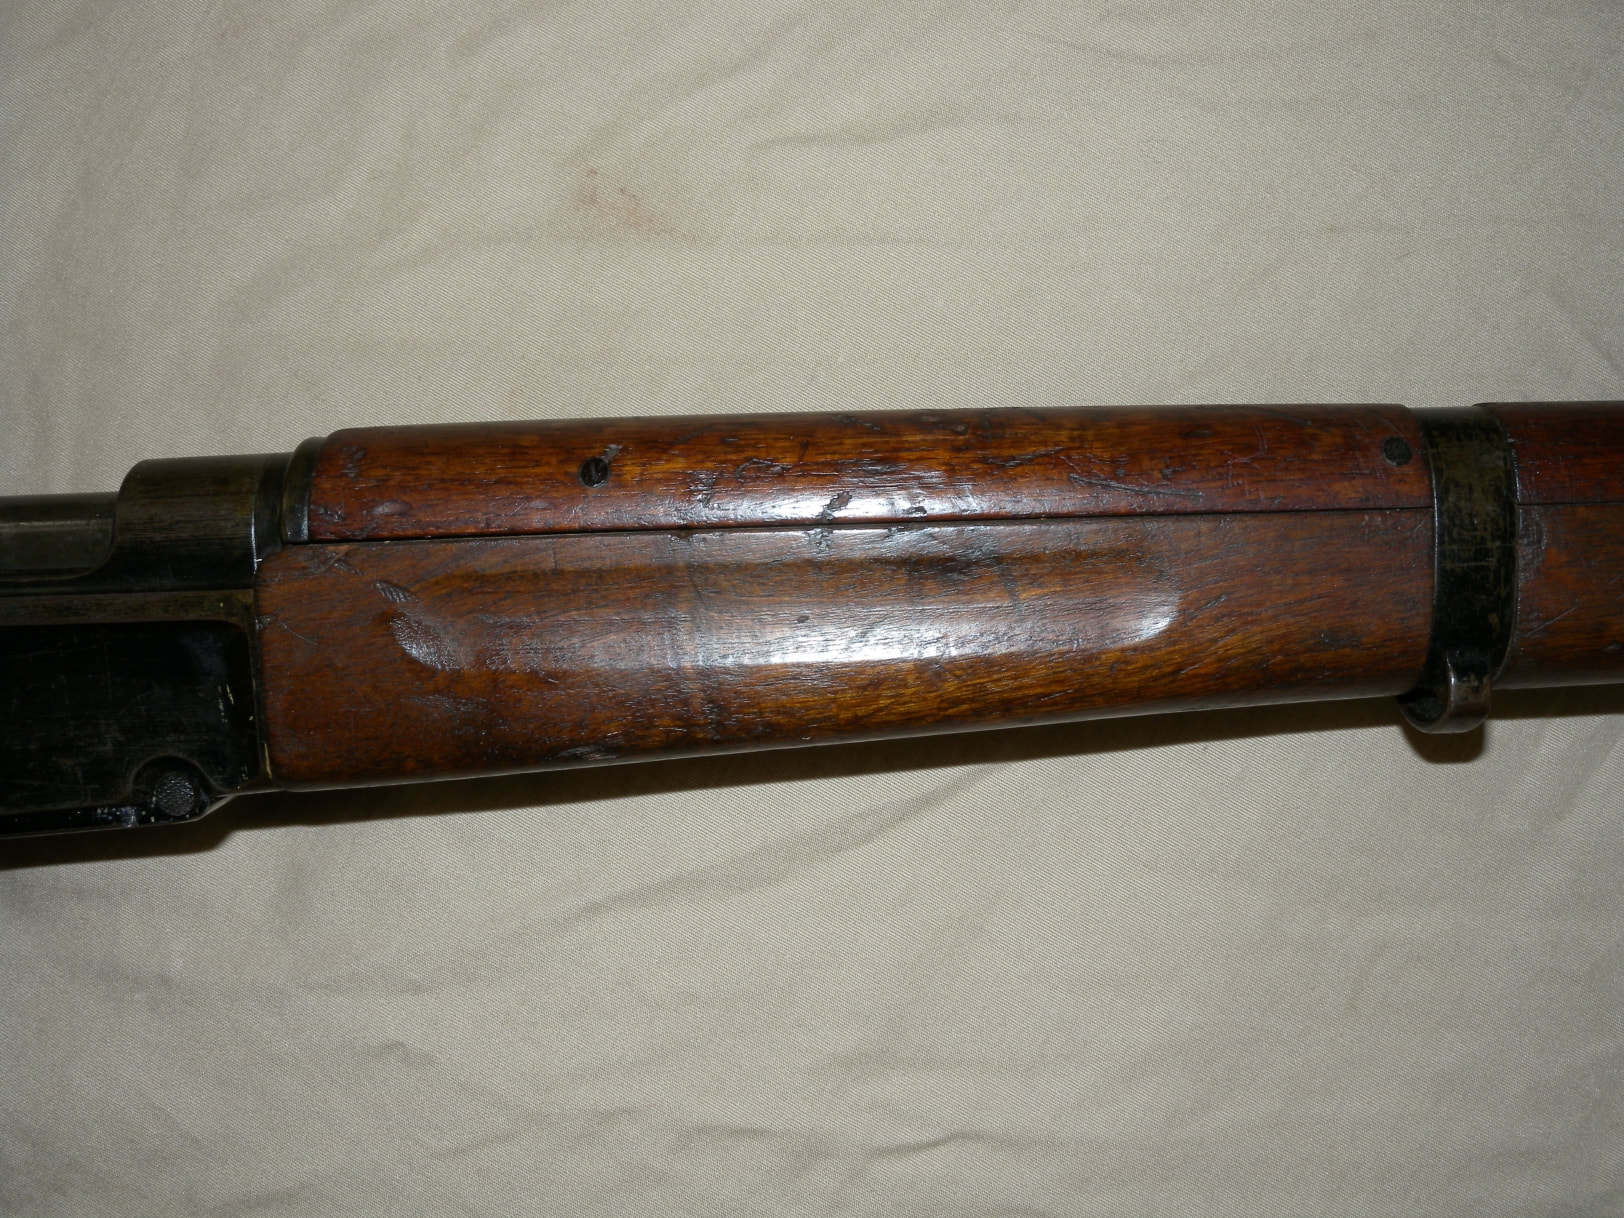 Pre-War French MAS 36 7 5mm